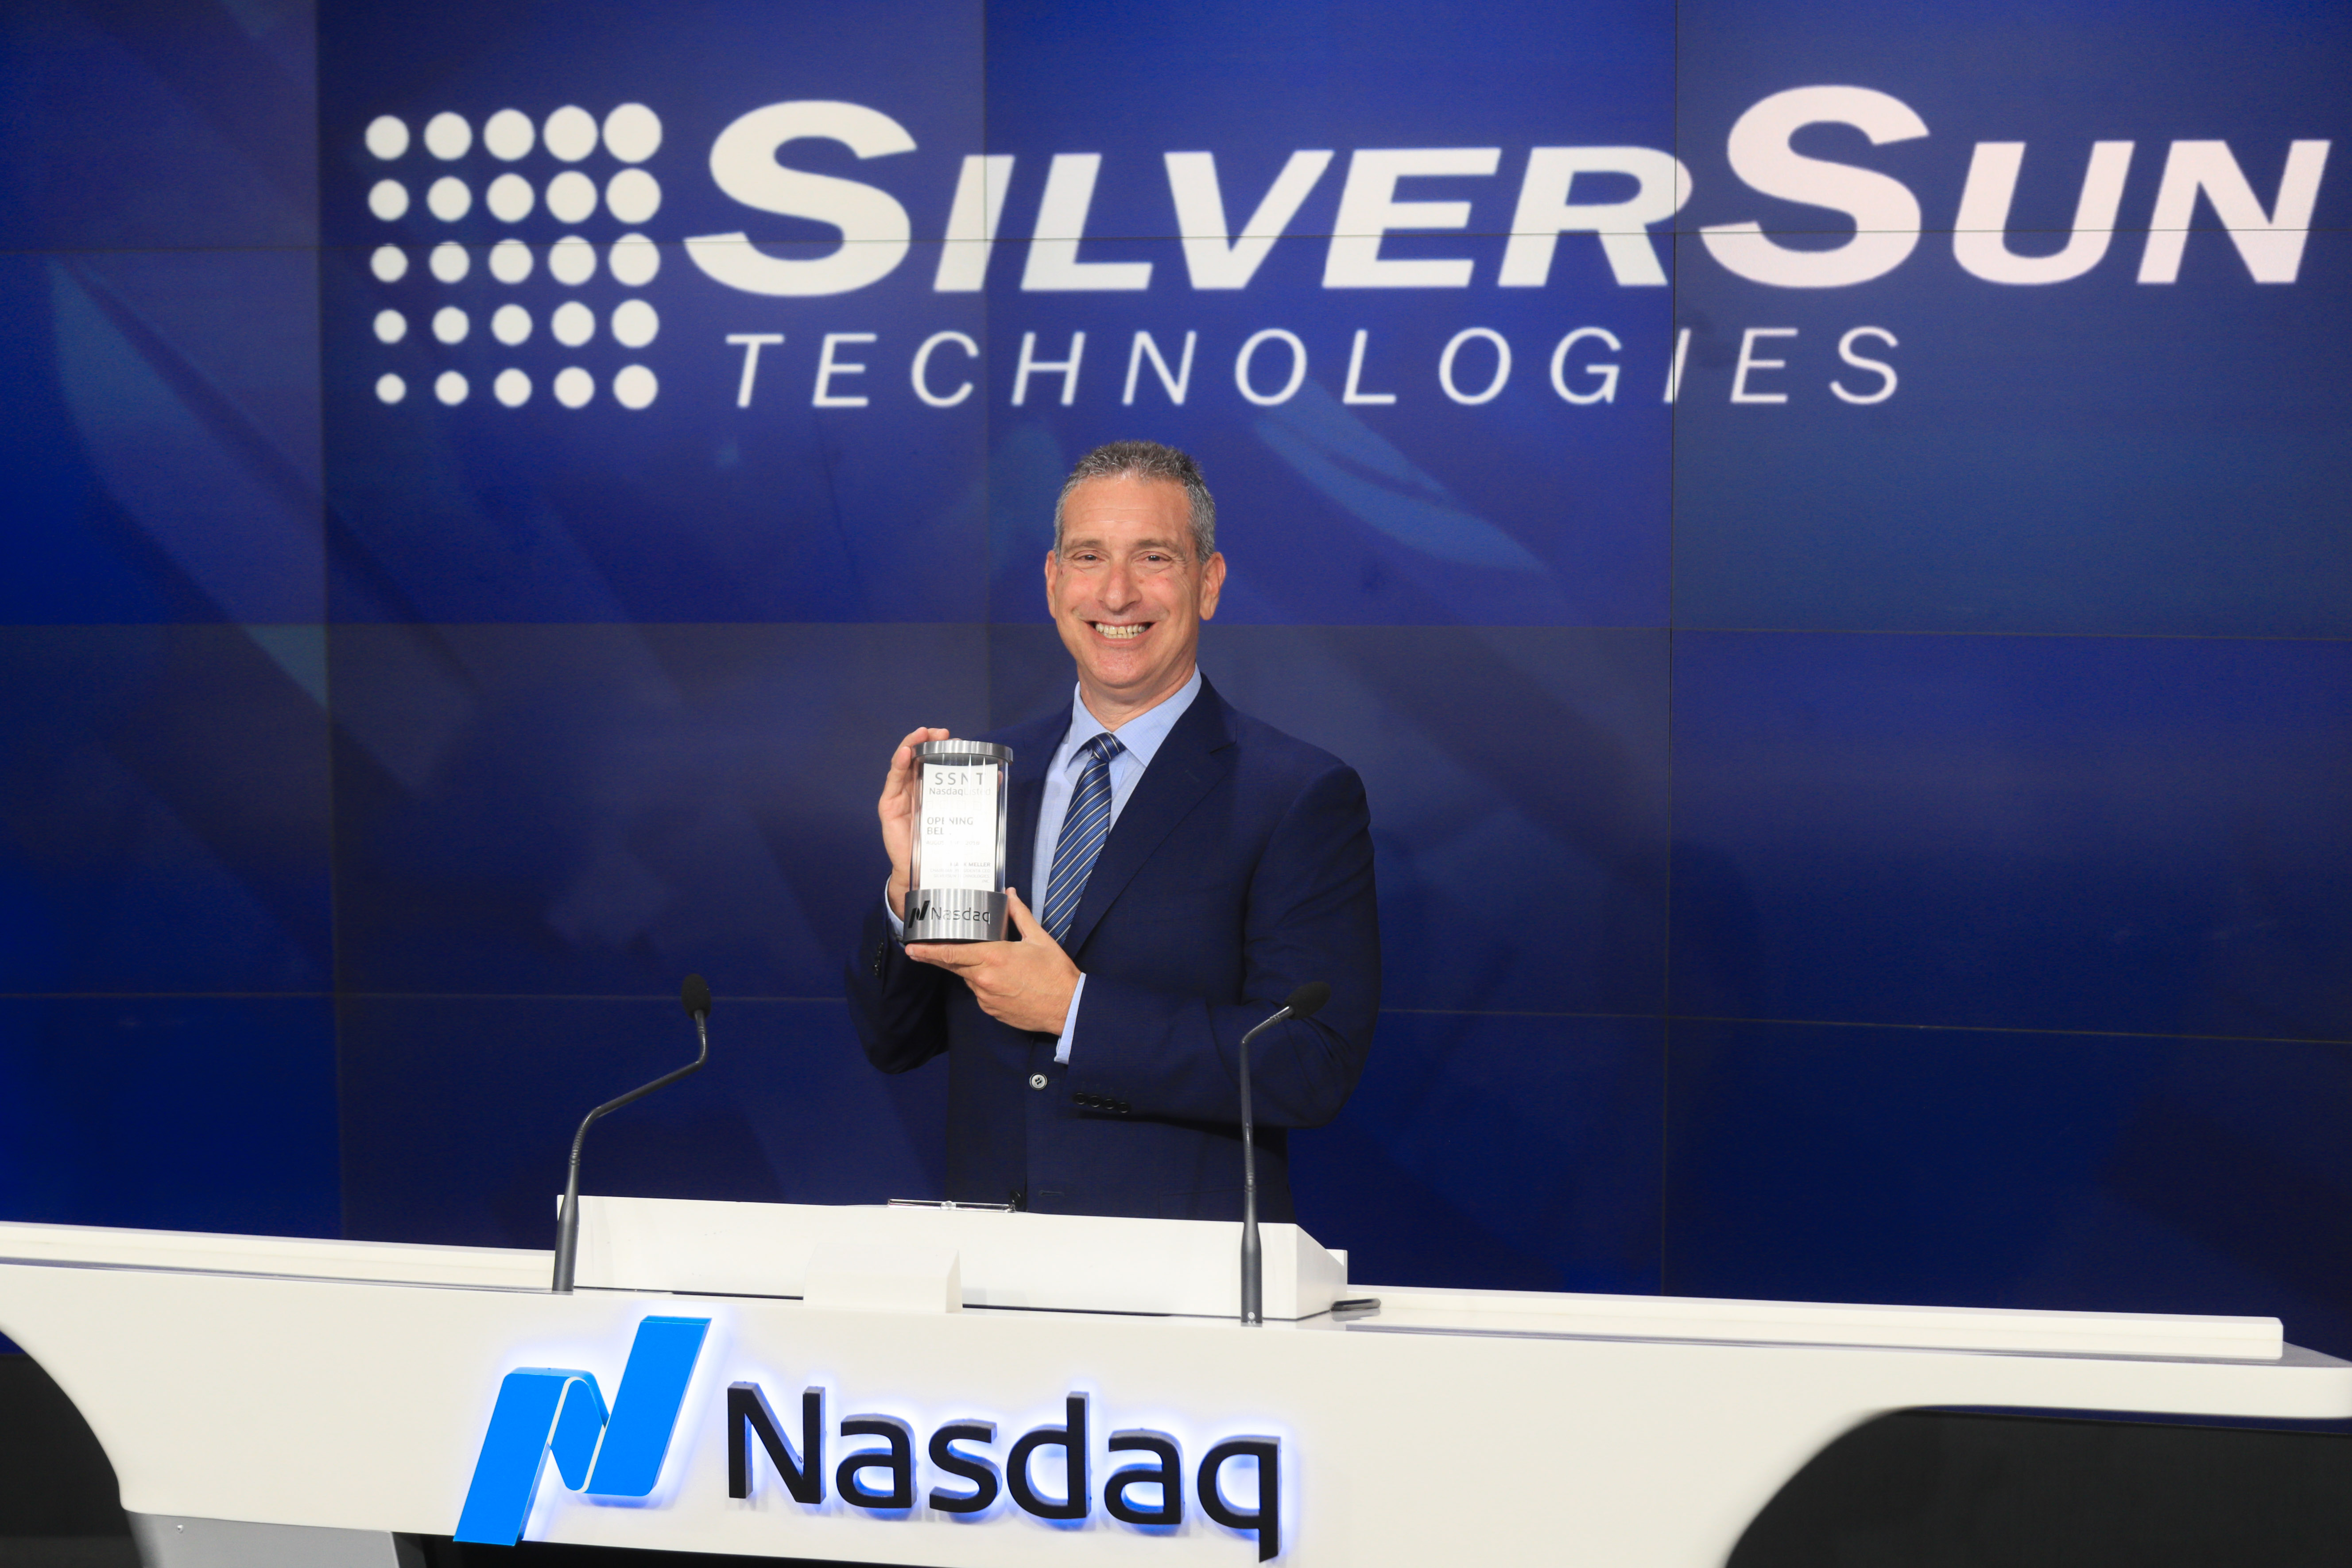 SWK Technologies, Inc. recently announced that Mark Meller, CEO of its parent company, SilverSun Technologies, Inc., was given the honor of ringing the Opening Bell at the NASDAQ MarketSite at Times Square, New York, on August 15, 2018